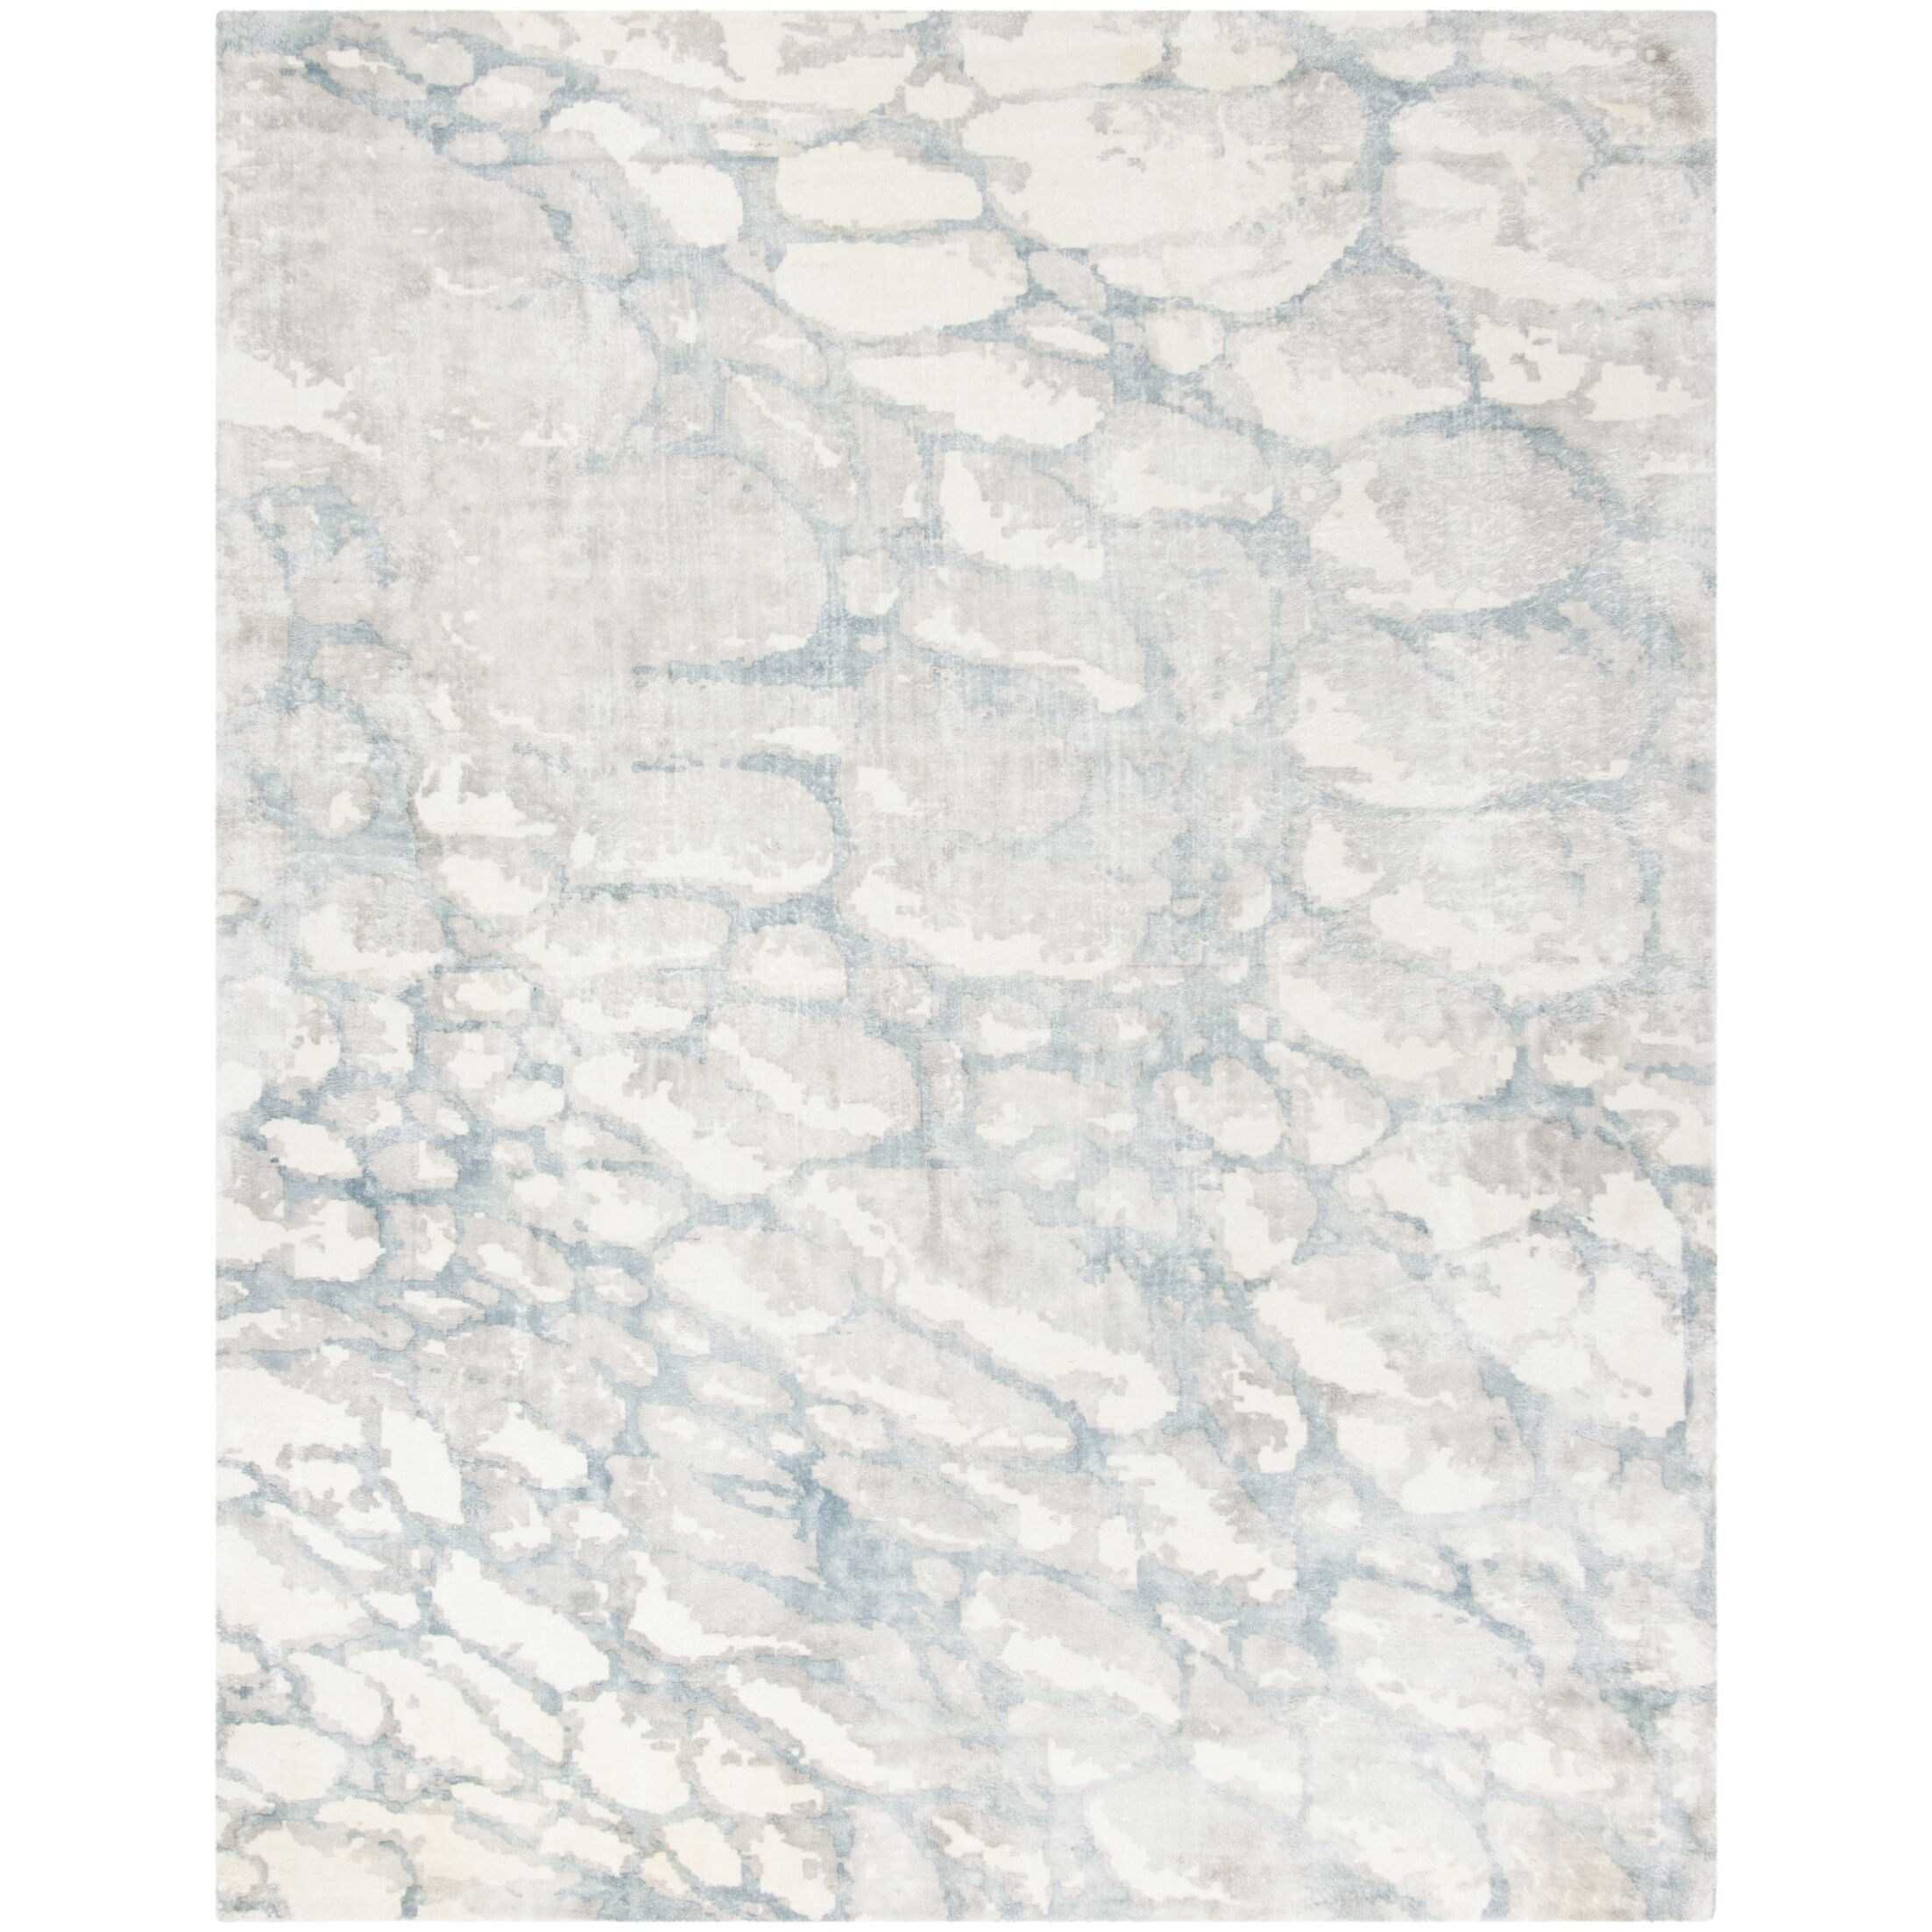 Wynkoop Hand Tufted Turquoise/Gray Area Rug Rug Size: Rectangle 8' x 10'